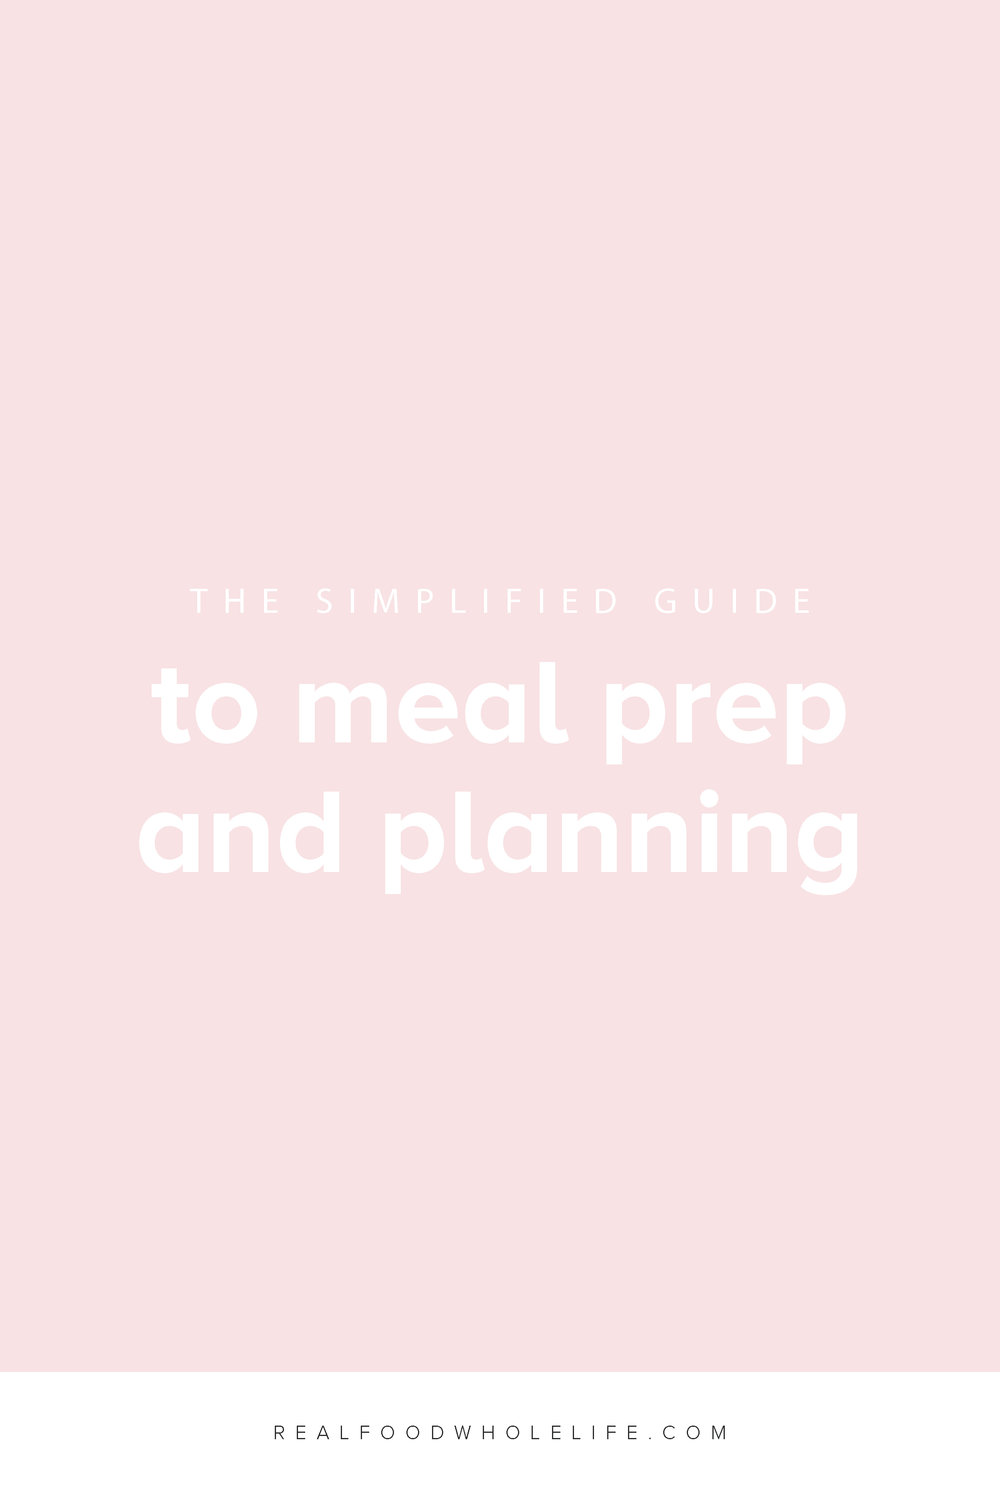 Simplified tips to make meal planning and meal prep easy with a free downloadable guide. #realfoodwholelife #realfoodwholelifesimplify #mealplanning #mealprep #foodprep #mealprepping #mealprepmonday #mealprepsunday #cleaneating